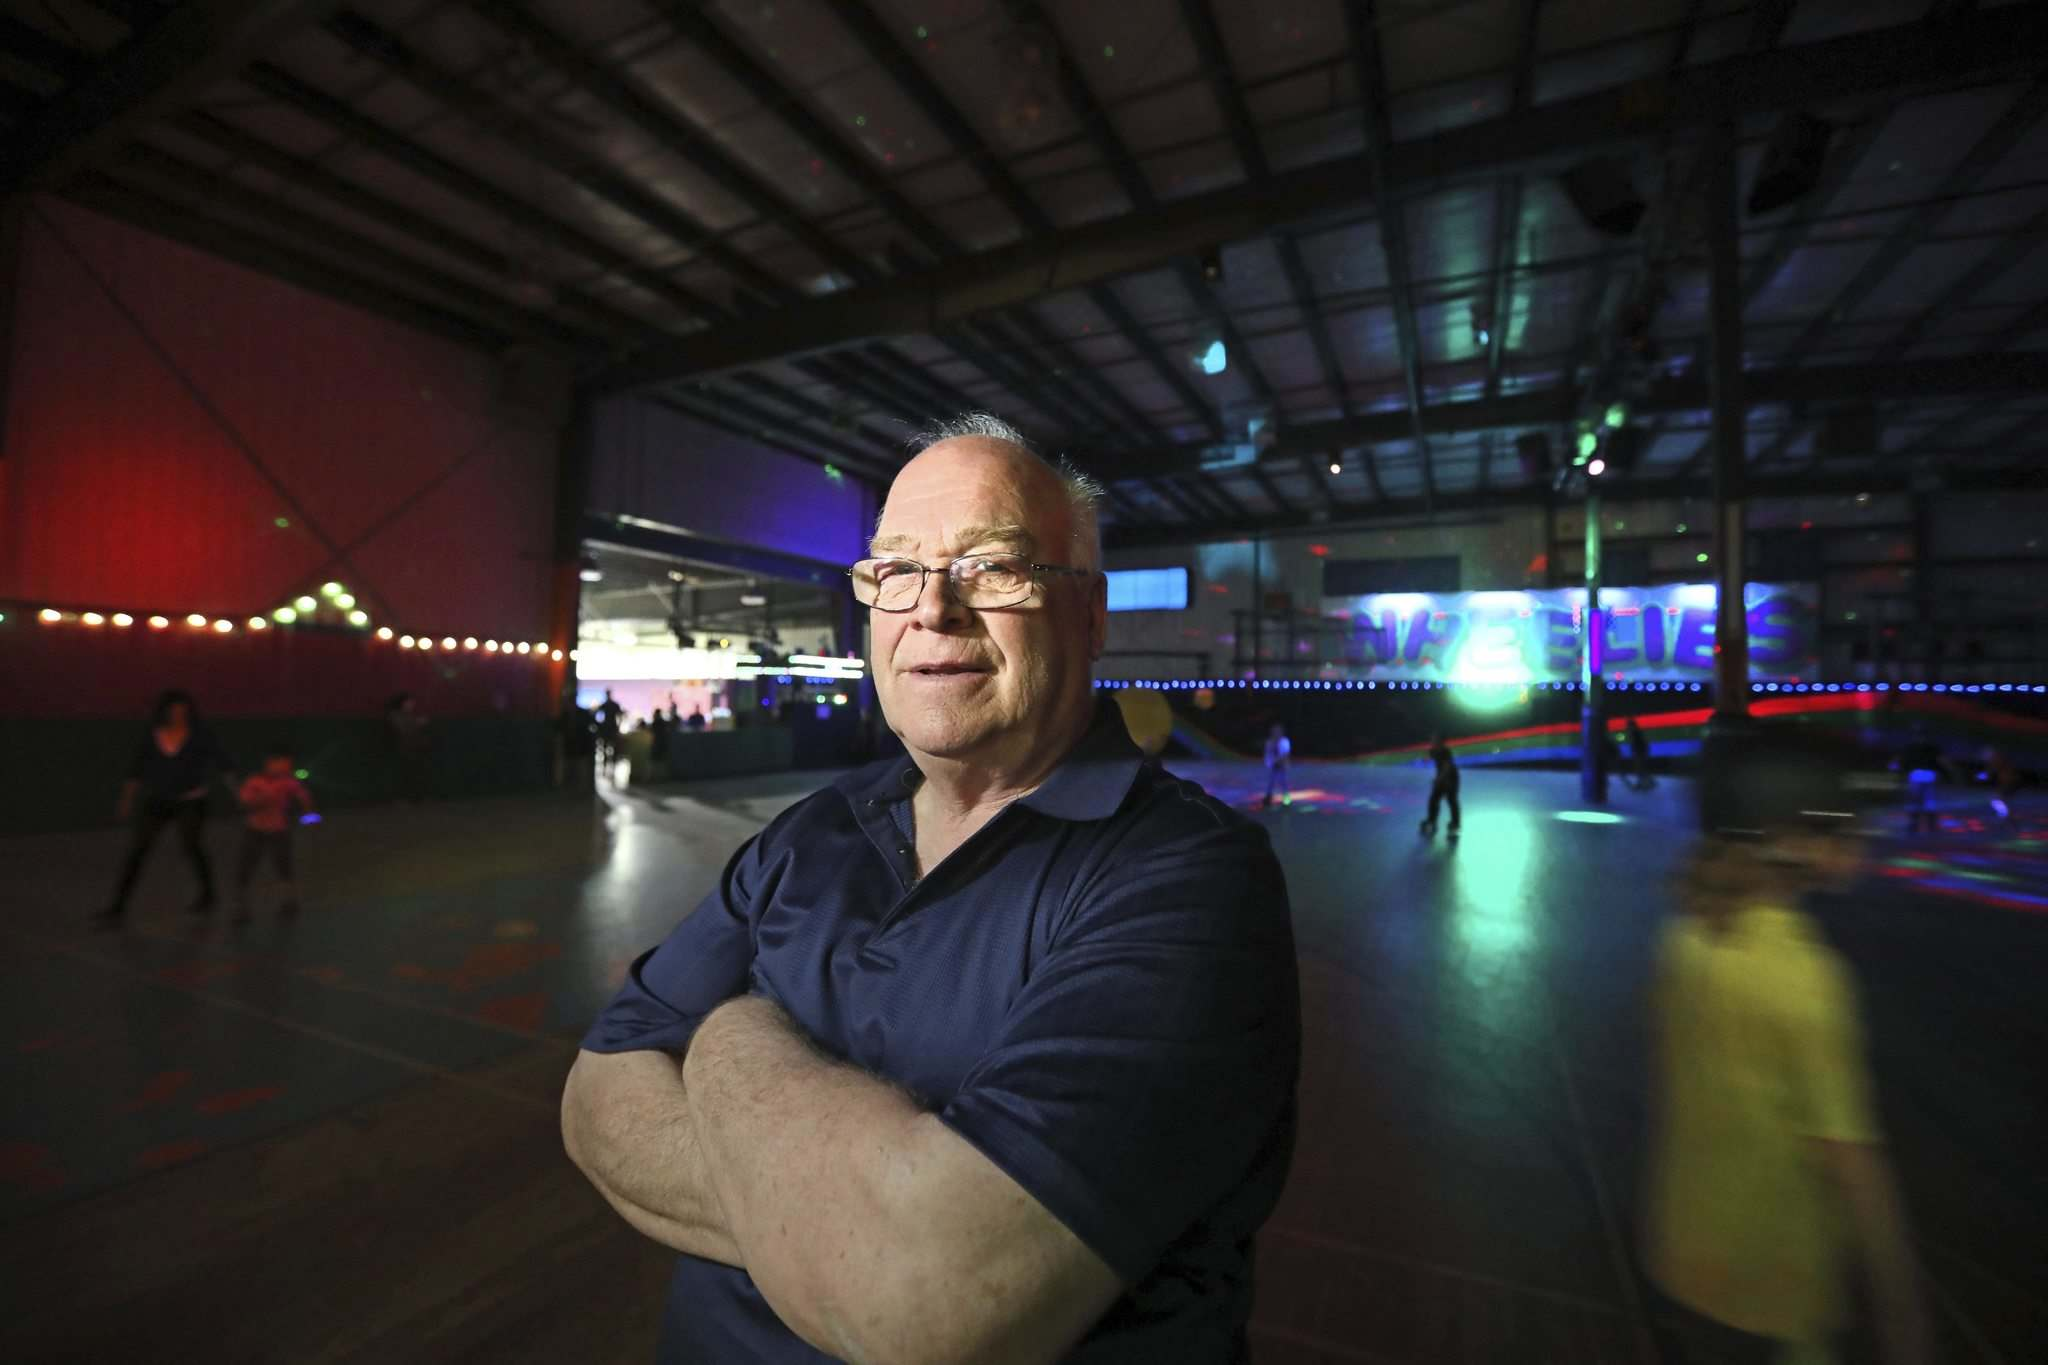 Gordon Gunn, the owner of Wheelies Roller Rink, said the building was recently bought by a neighbouring tenant, forcing the roller rink out. (Ruth Bonneville / Winnipeg Free Press)</p>